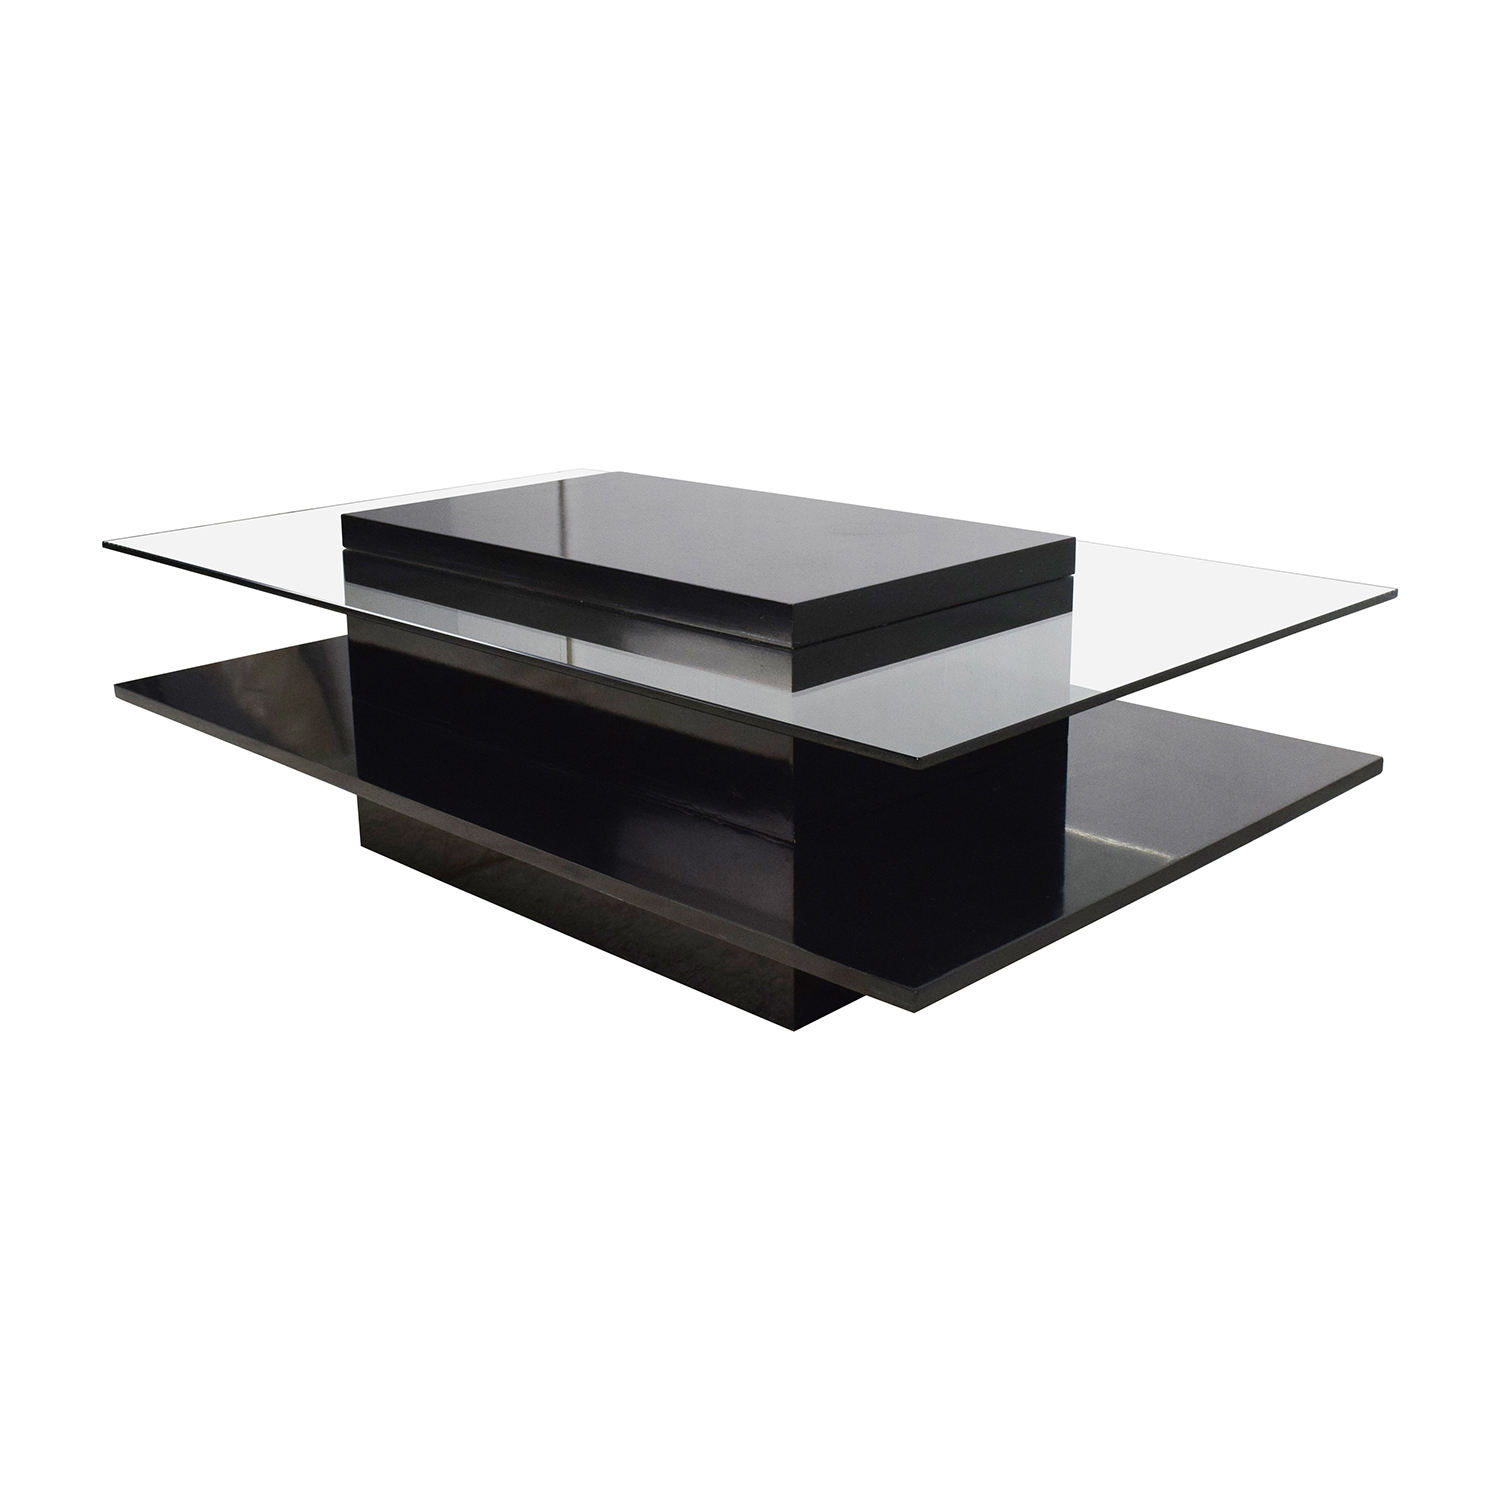 79% OFF Door Store The Door Store Glass and Wood Coffee Table